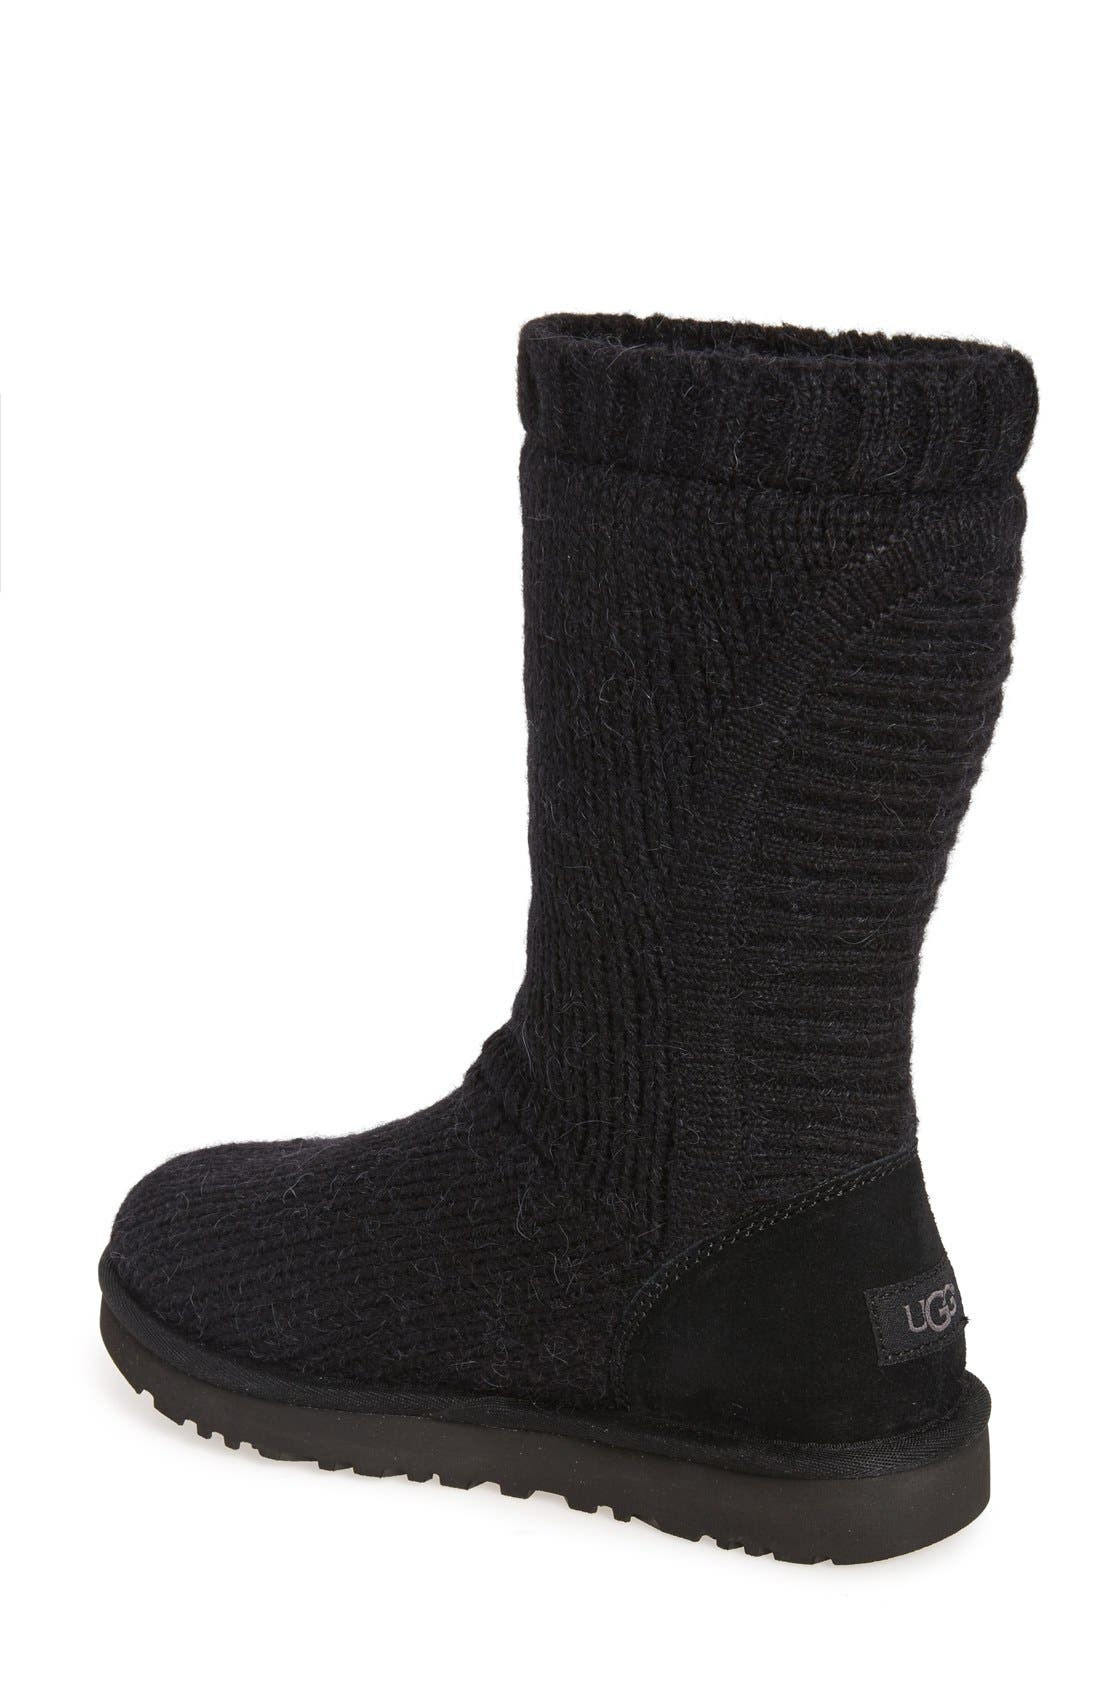 'Capra' Ribbed Knit Genuine Shearling Lined Boot,                             Alternate thumbnail 3, color,                             001